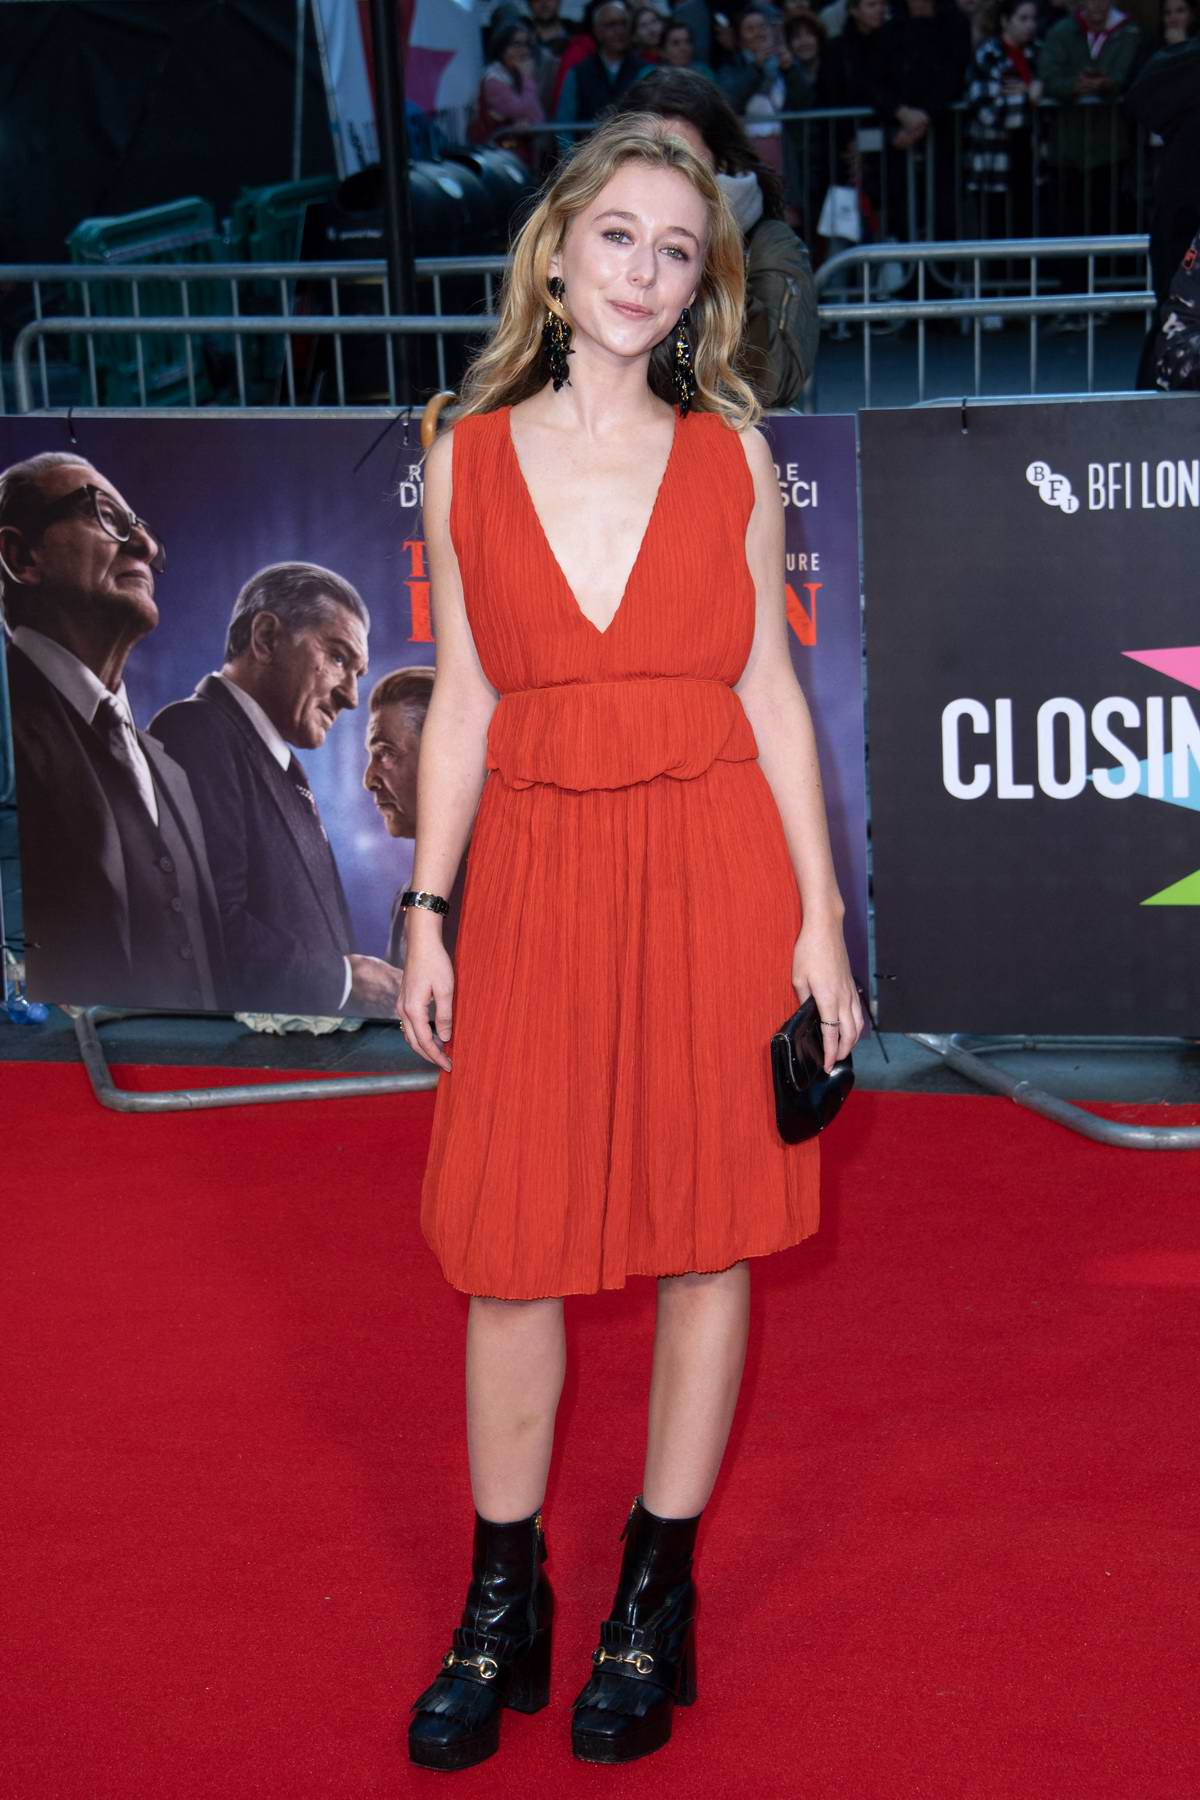 India Ennenga attends the Premier of 'The Irishman' during the 63rd BFI London Film Festival in London, UK